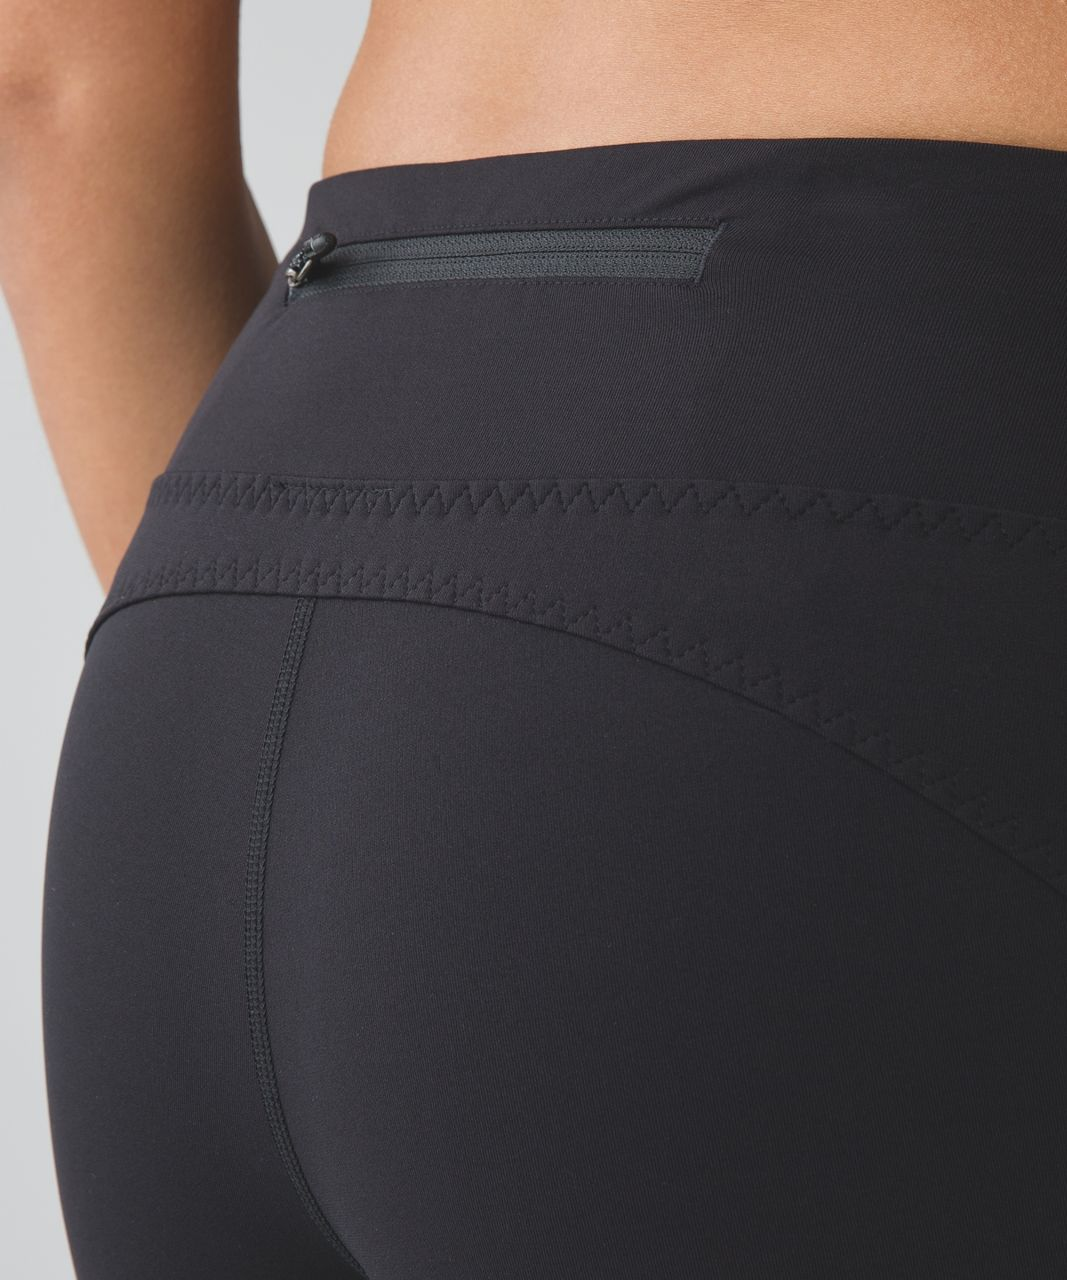 Lululemon Real Quick Crop *Full-On Luxtreme - Black